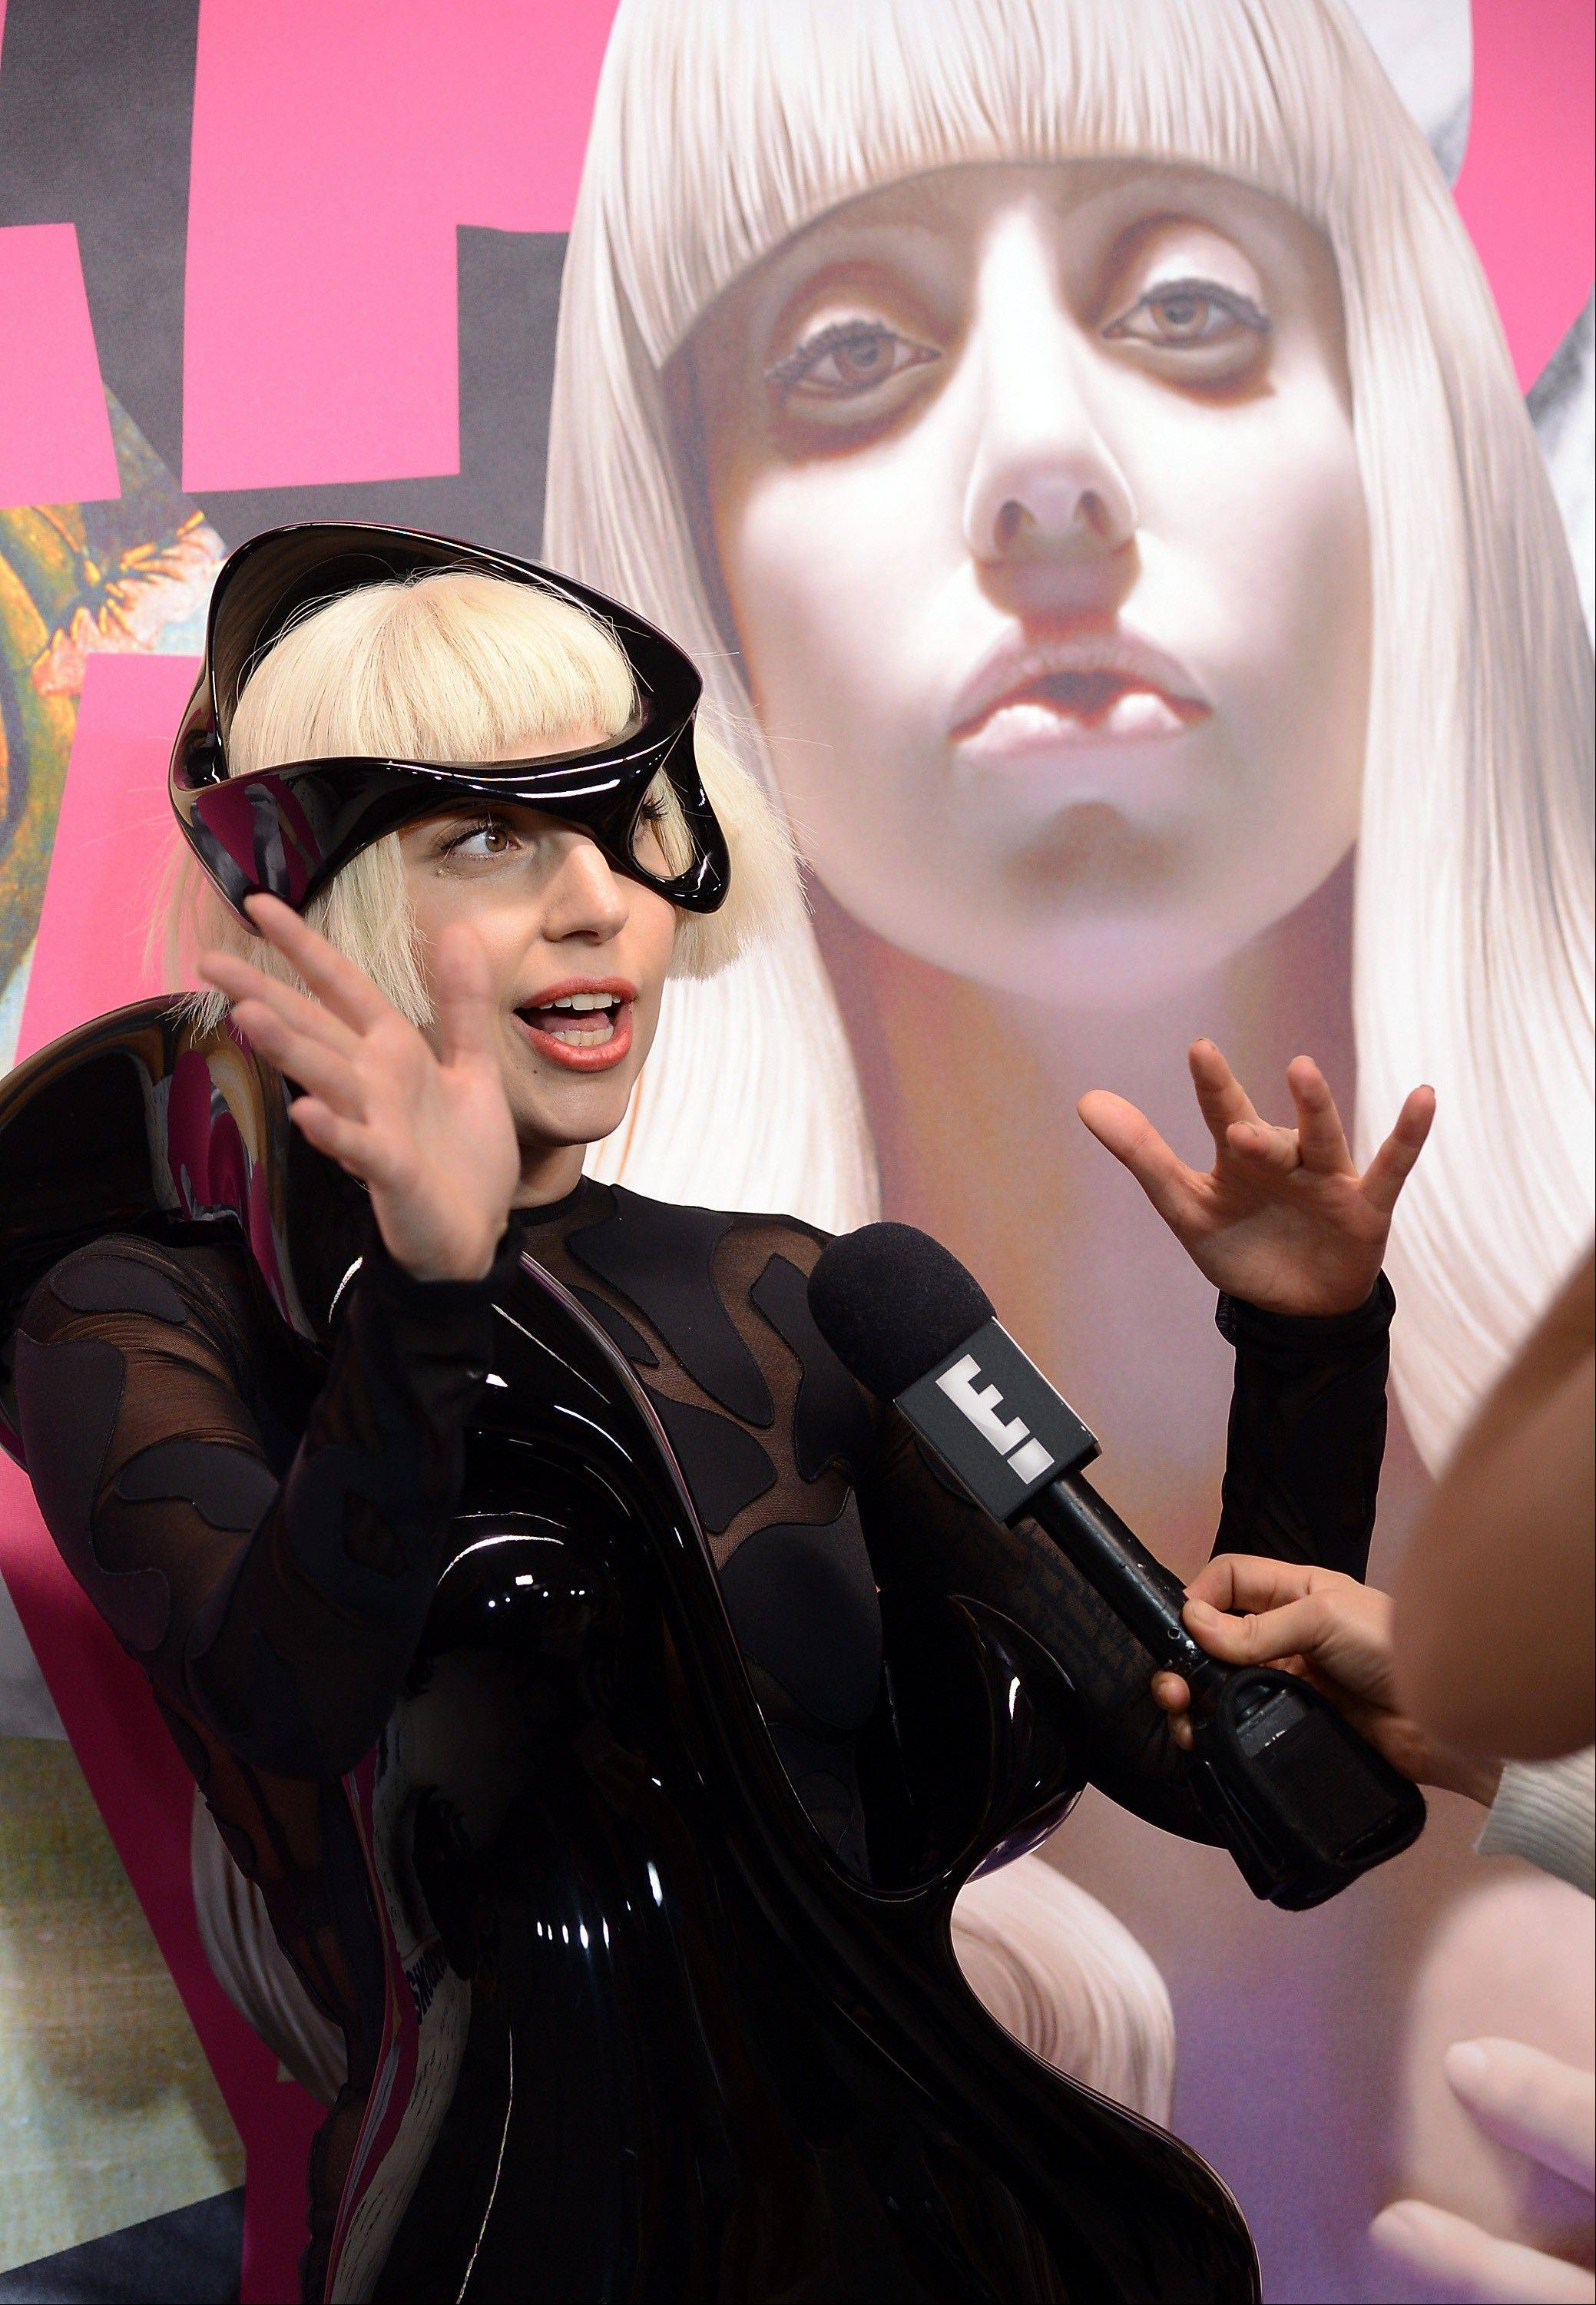 Singer Lady Gaga attends her ARTPOP album release and artRave event the Brooklyn Navy Yard on Sunday, Nov. 10, 2013 in New York City.